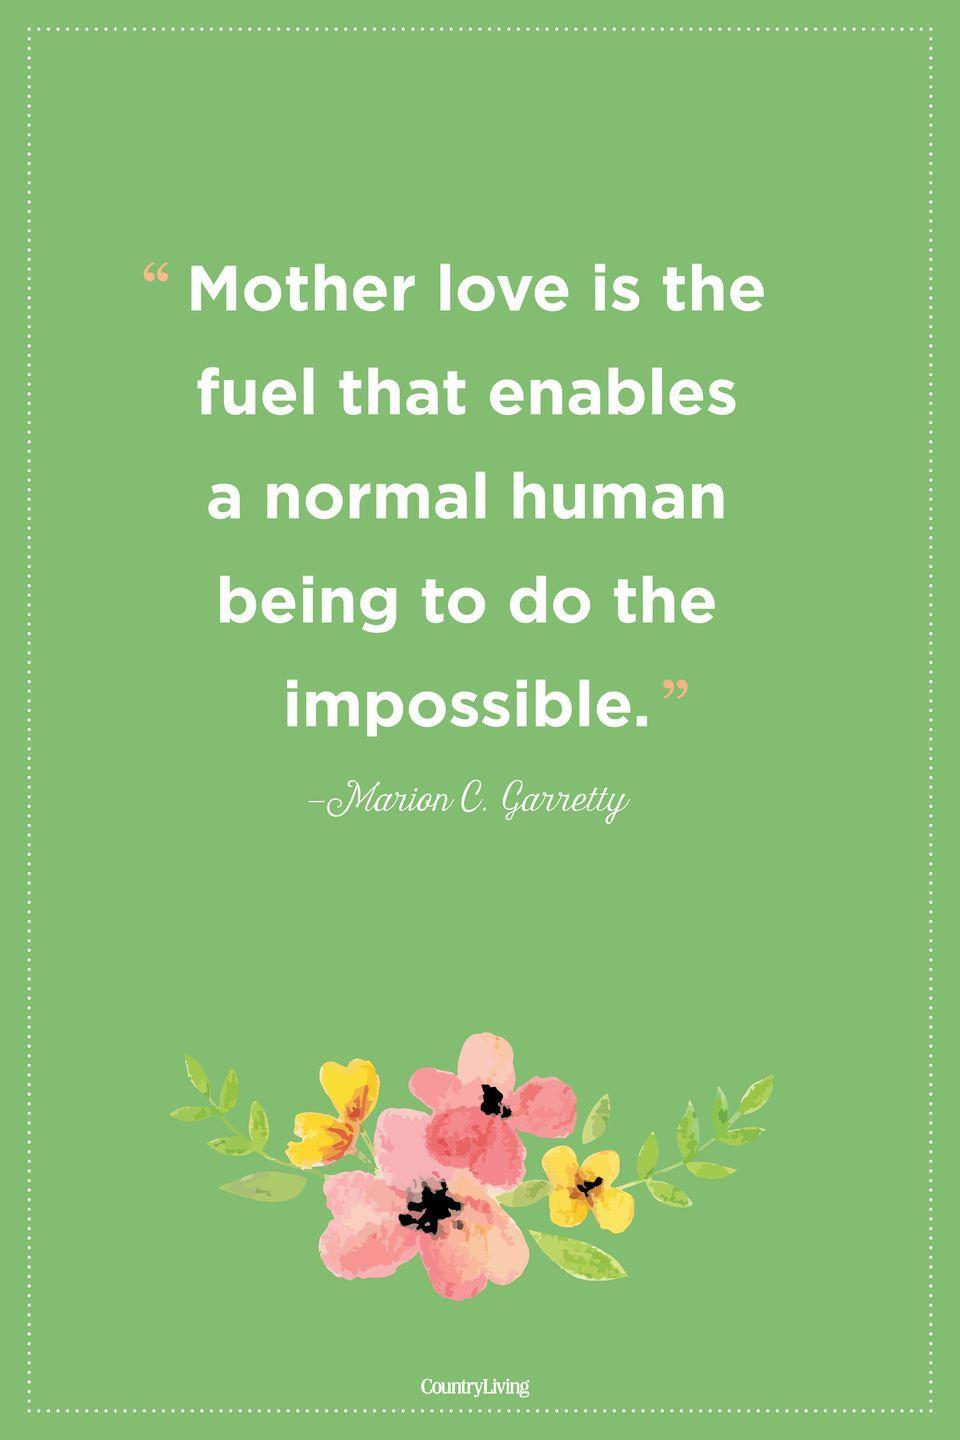 "<p>""Mother love is the fuel that enables a normal human being to do the impossible.""</p>"